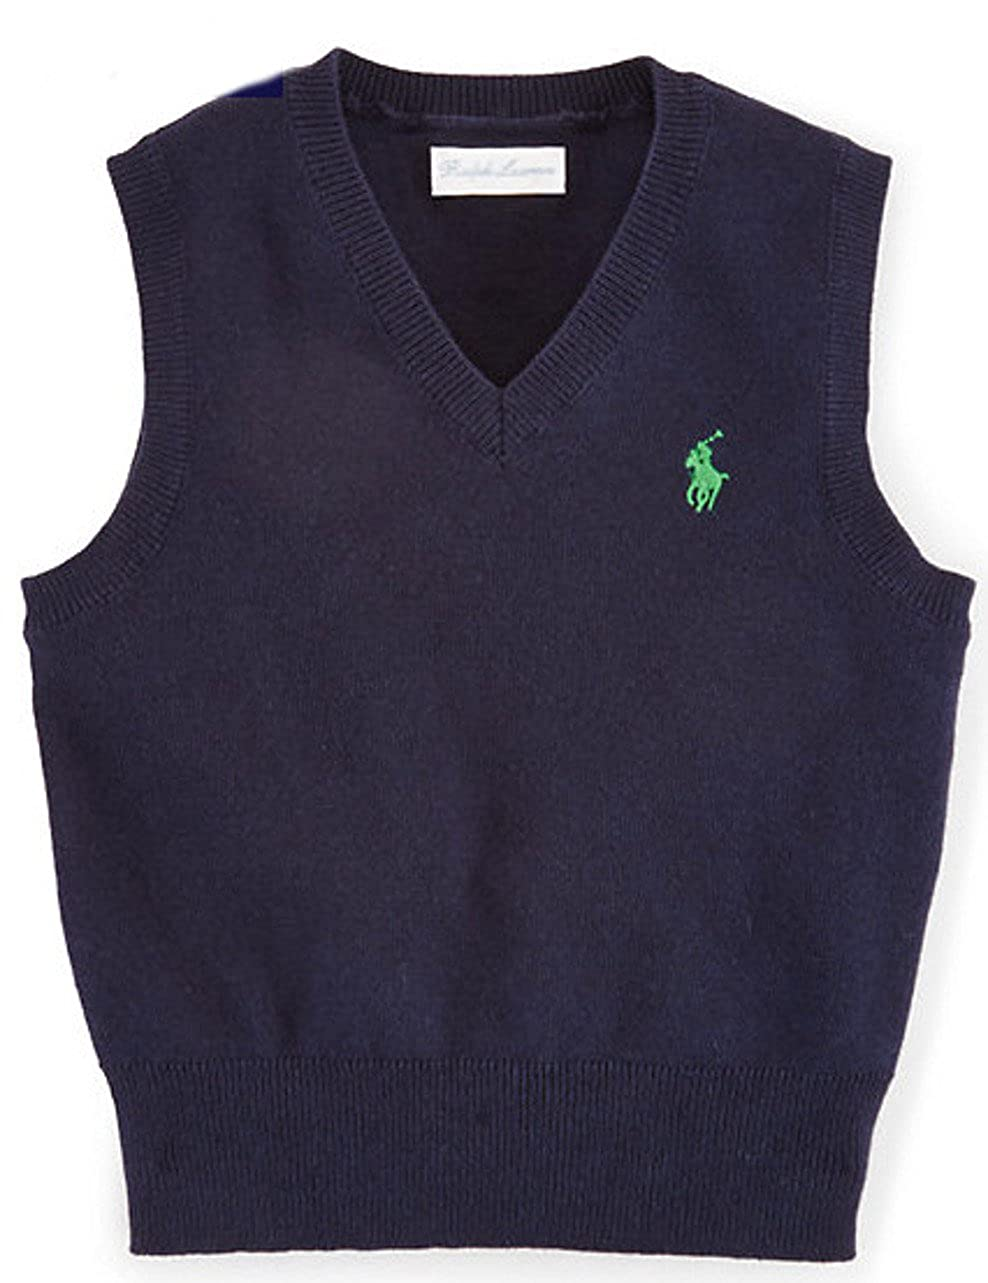 3bae937ff Amazon.com: Polo Ralph Lauren Baby Boys' Cotton V-Neck Sweater Vest Hunter  Navy (3 Months): Clothing